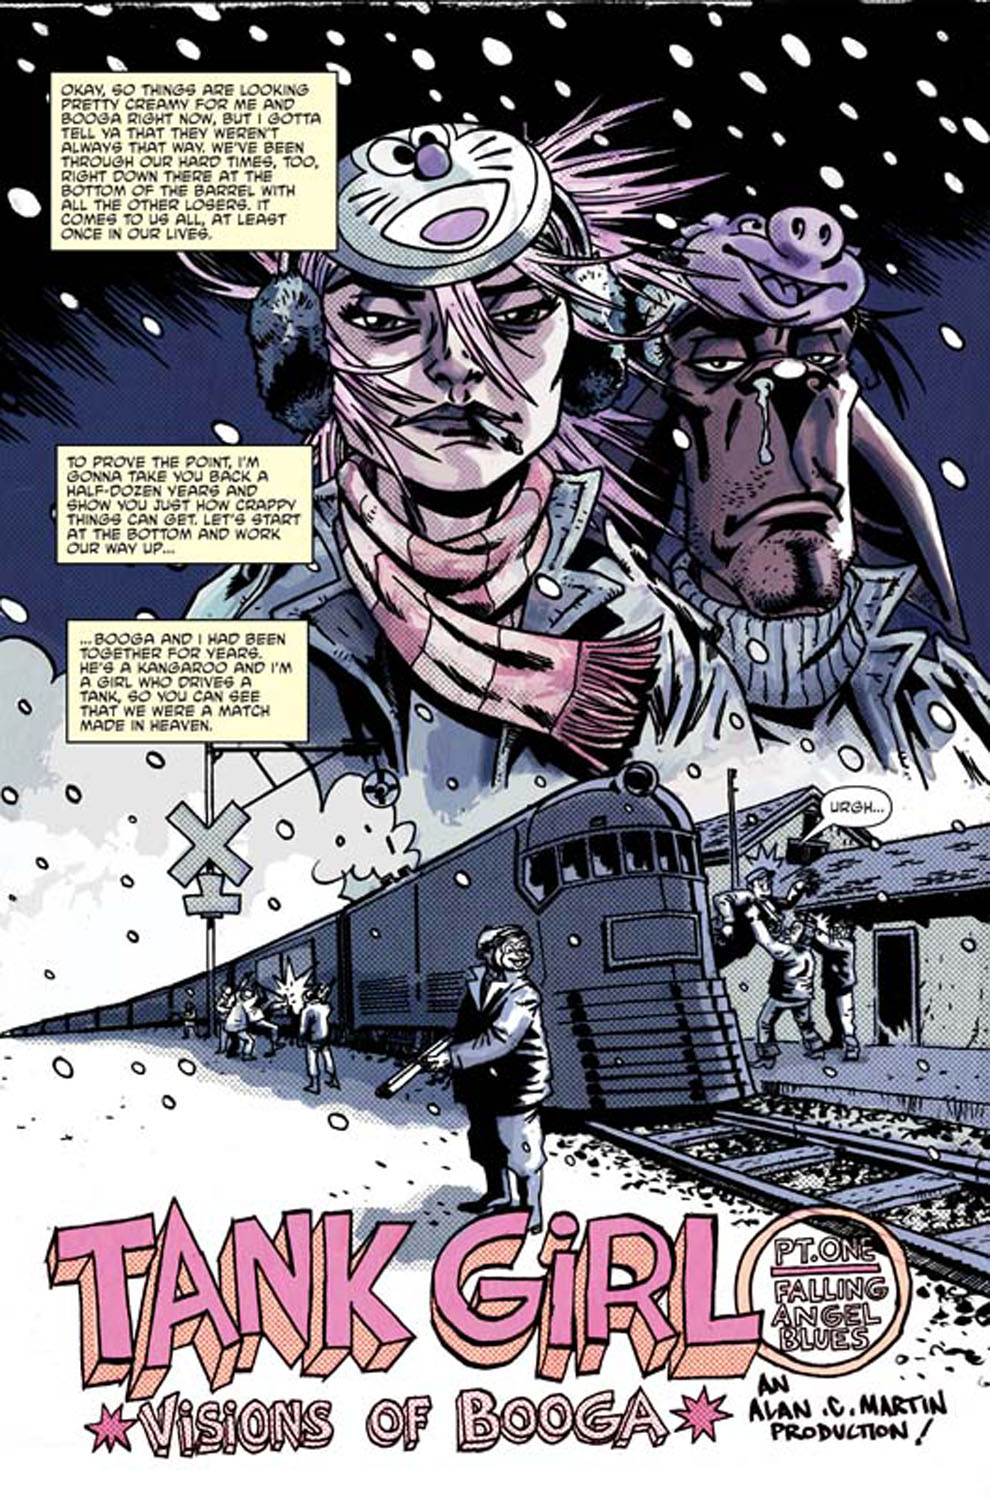 tankgirl_visions_of_booga_pg1_by_nuclearnietzsche.jpg